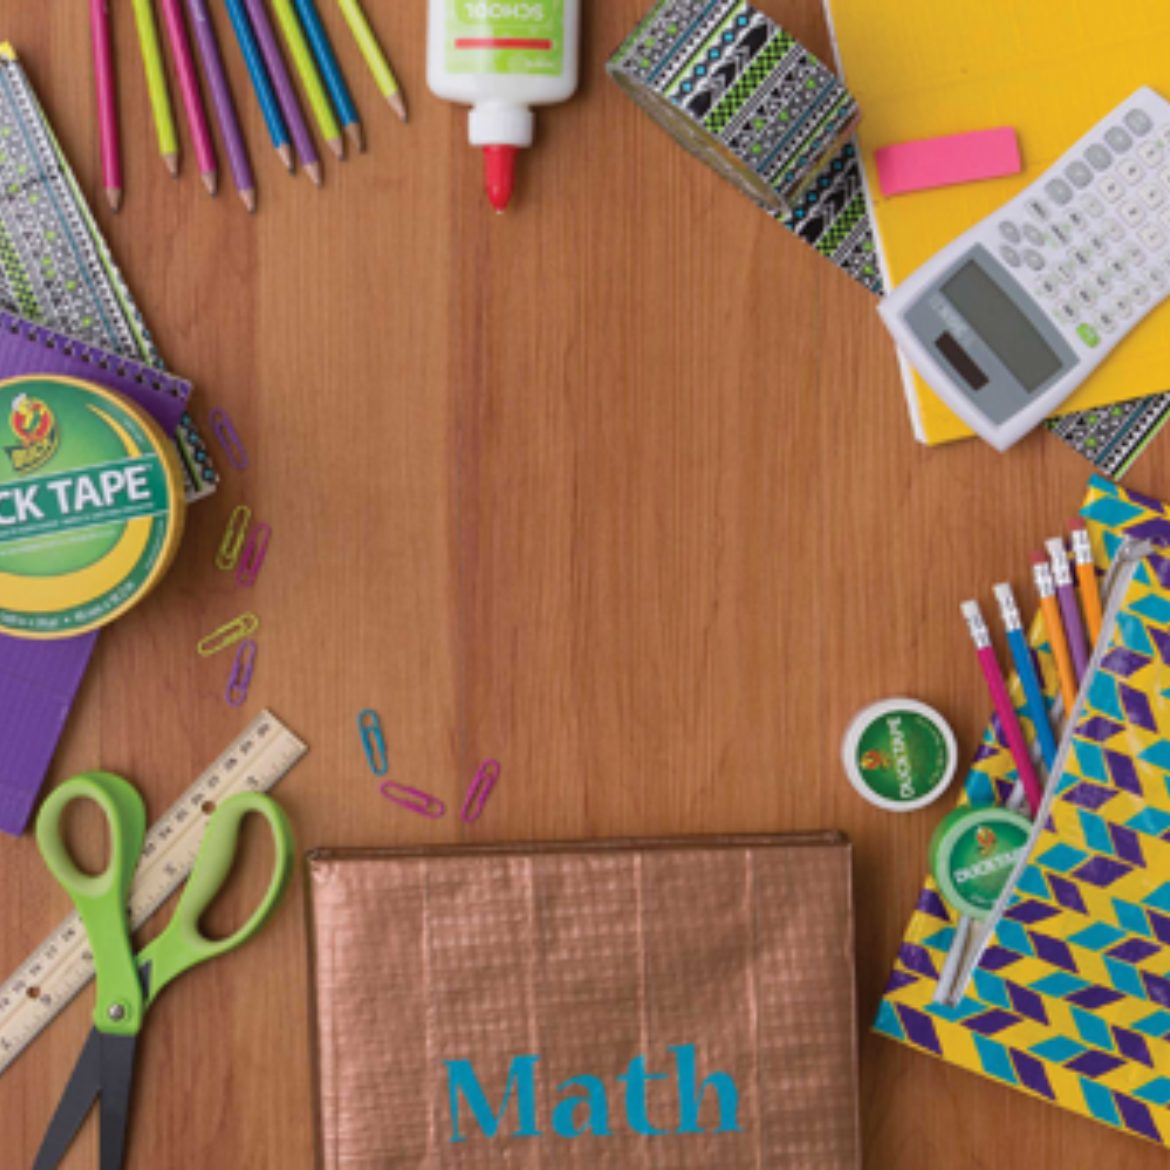 6 Diy Duct Tape Crafts To Style Your School Supplies Duck